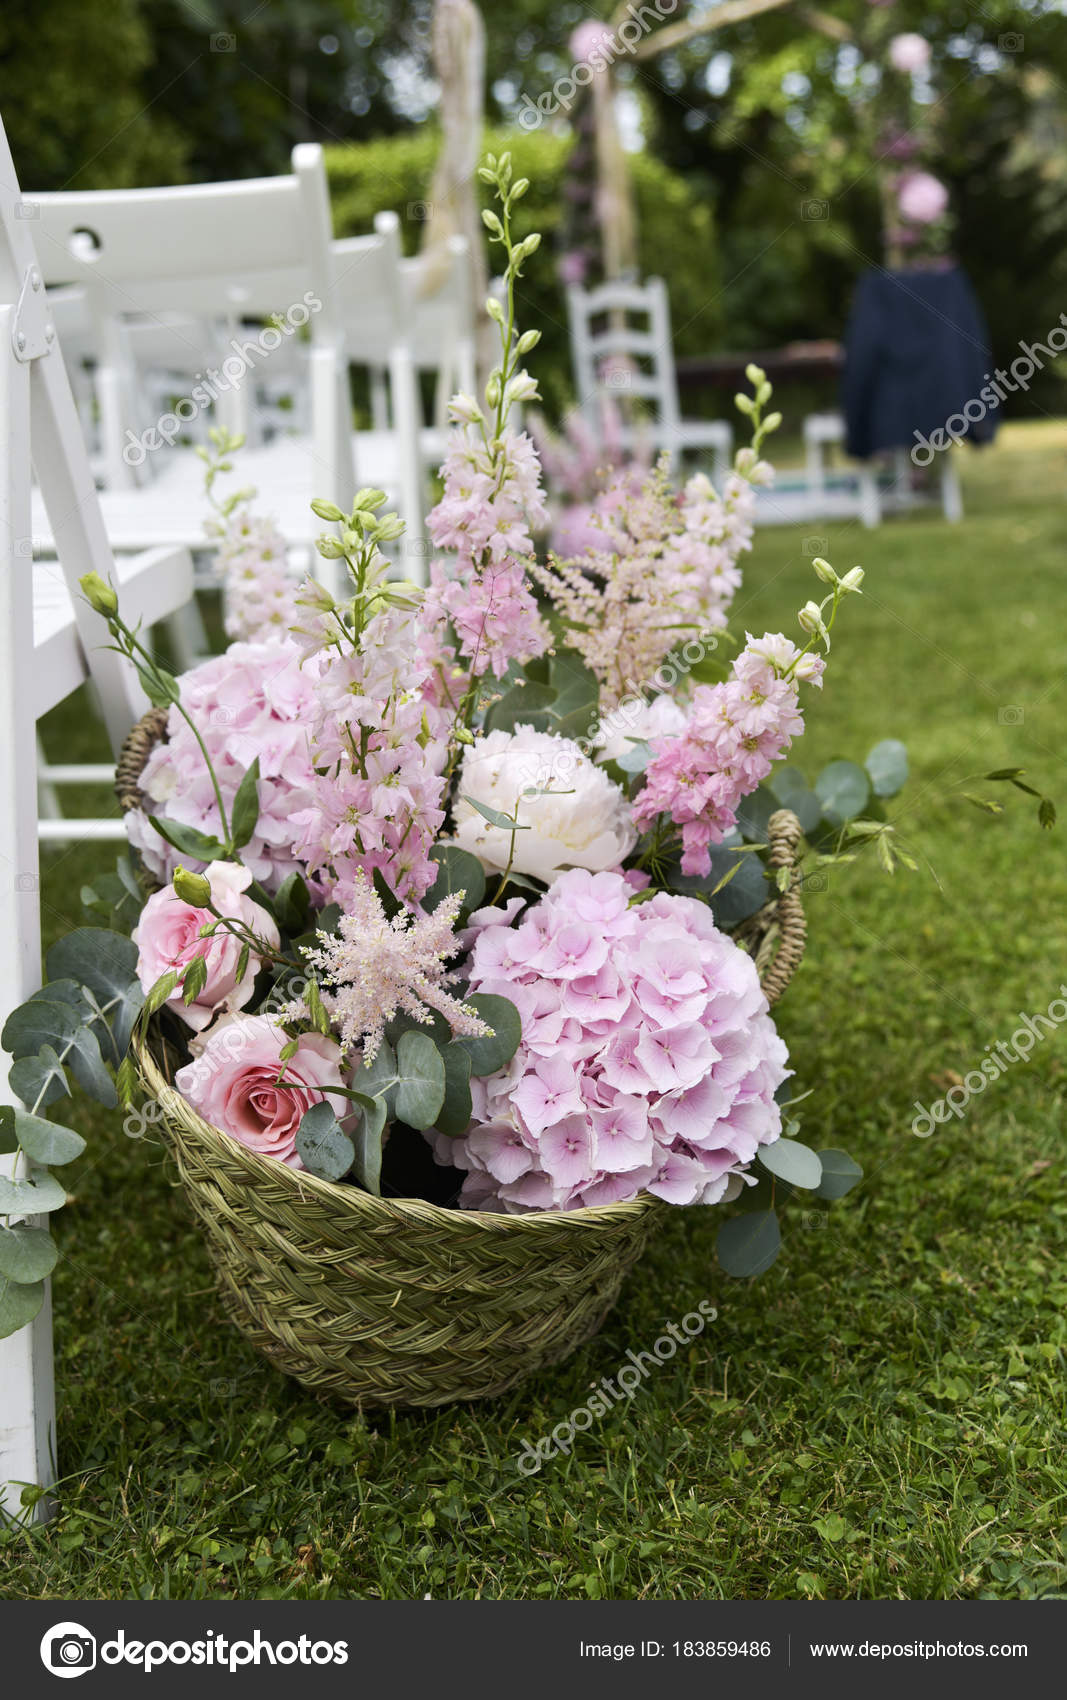 Flower arrangement in an open air wedding ceremony stock photo closeup of an arrangement of different pale pink flowers in a basket as a decoration in an open air wedding ceremony photo by nito103 junglespirit Image collections